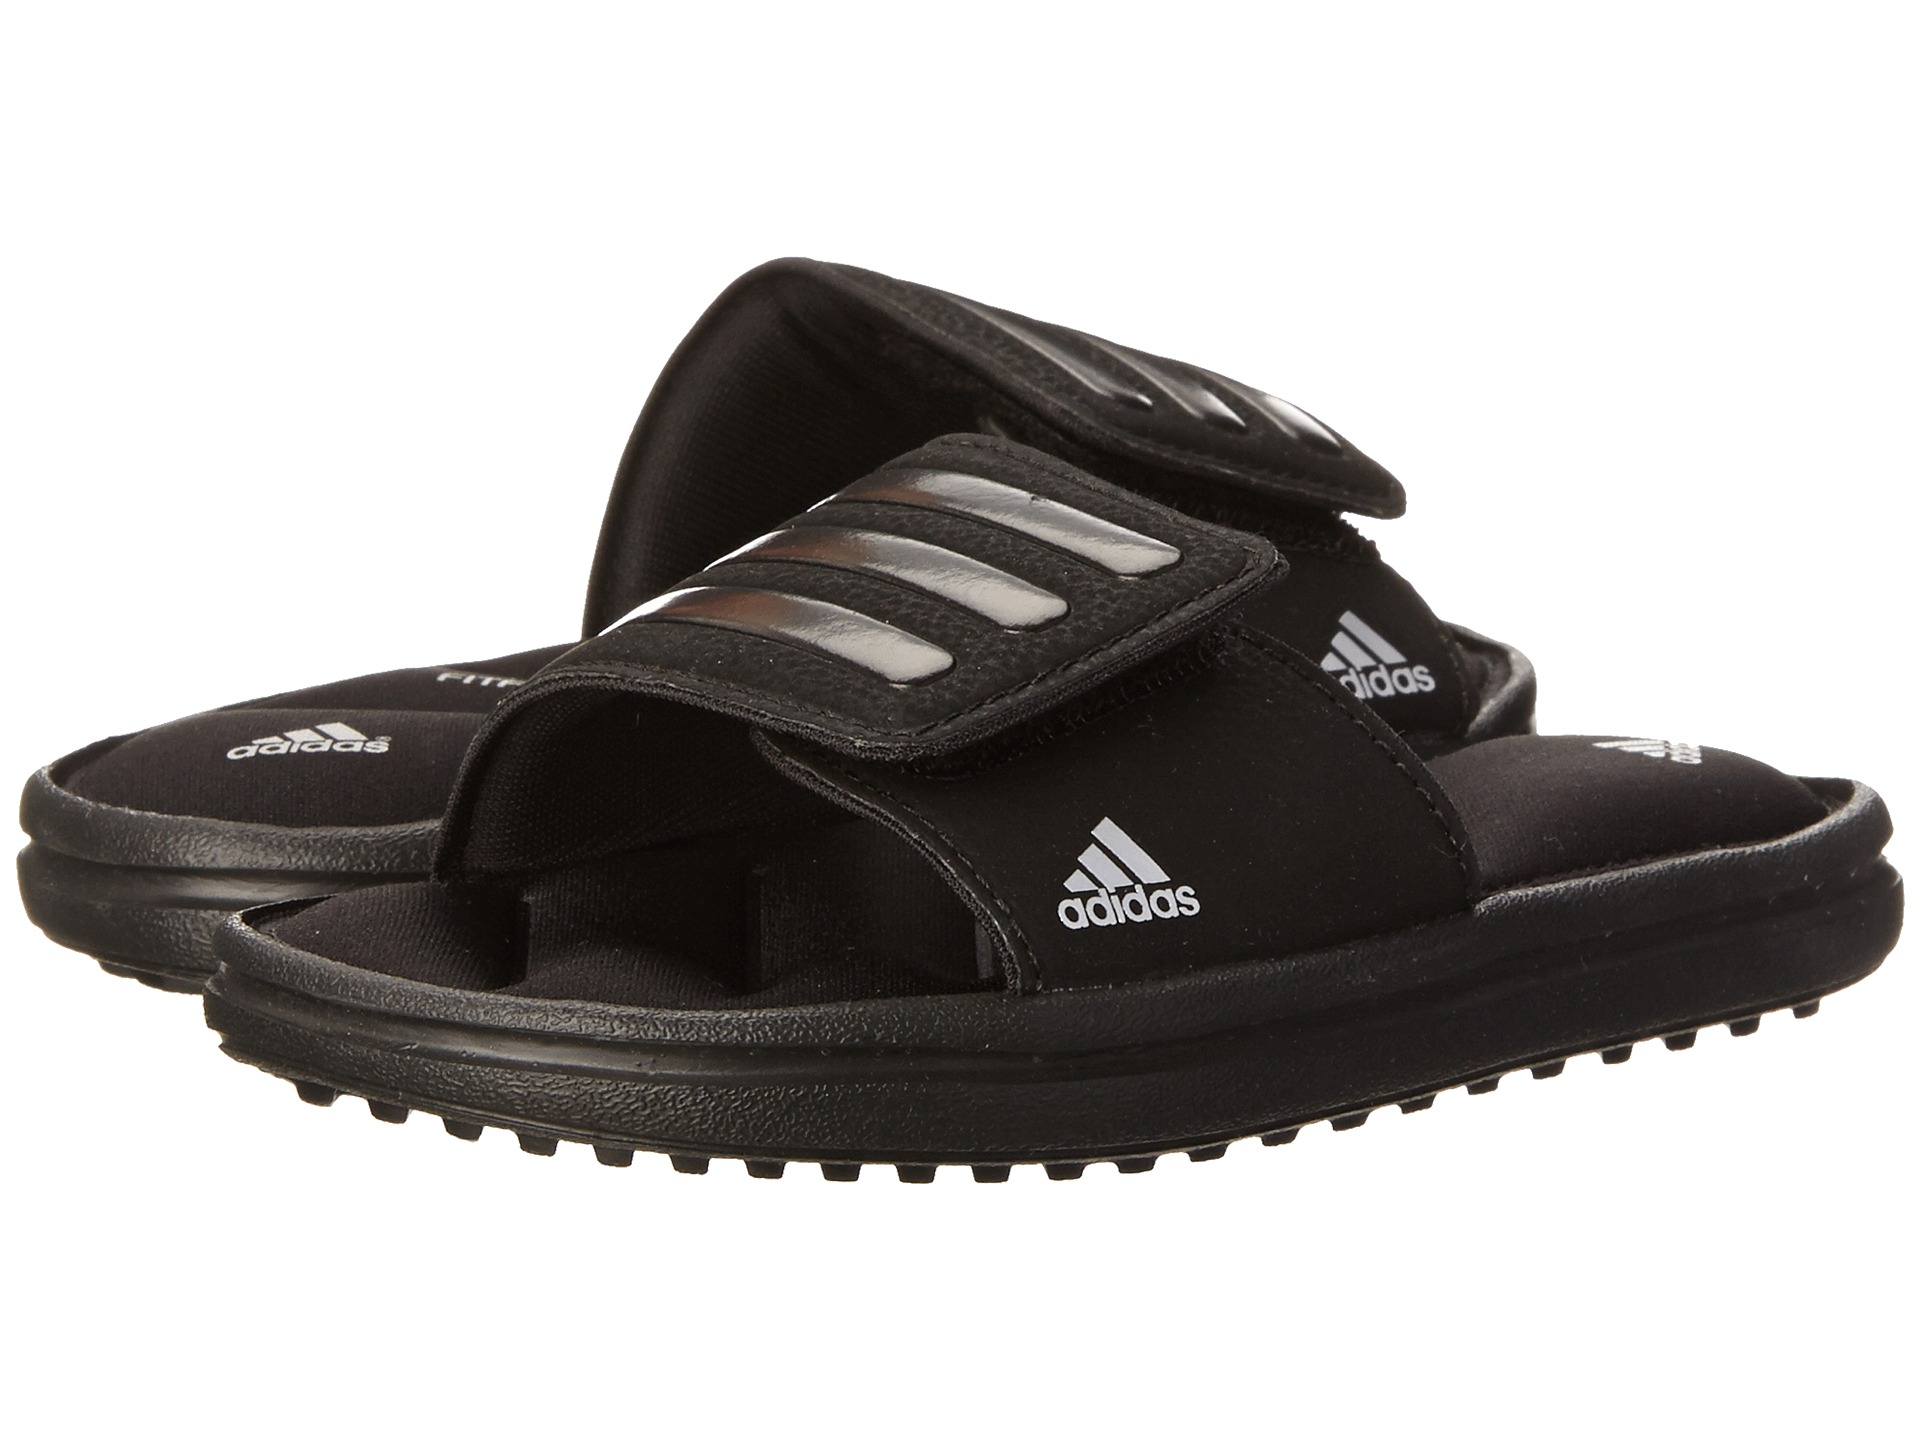 70c996d15465 Buy adidas flip flops kids for sale   OFF67% Discounted